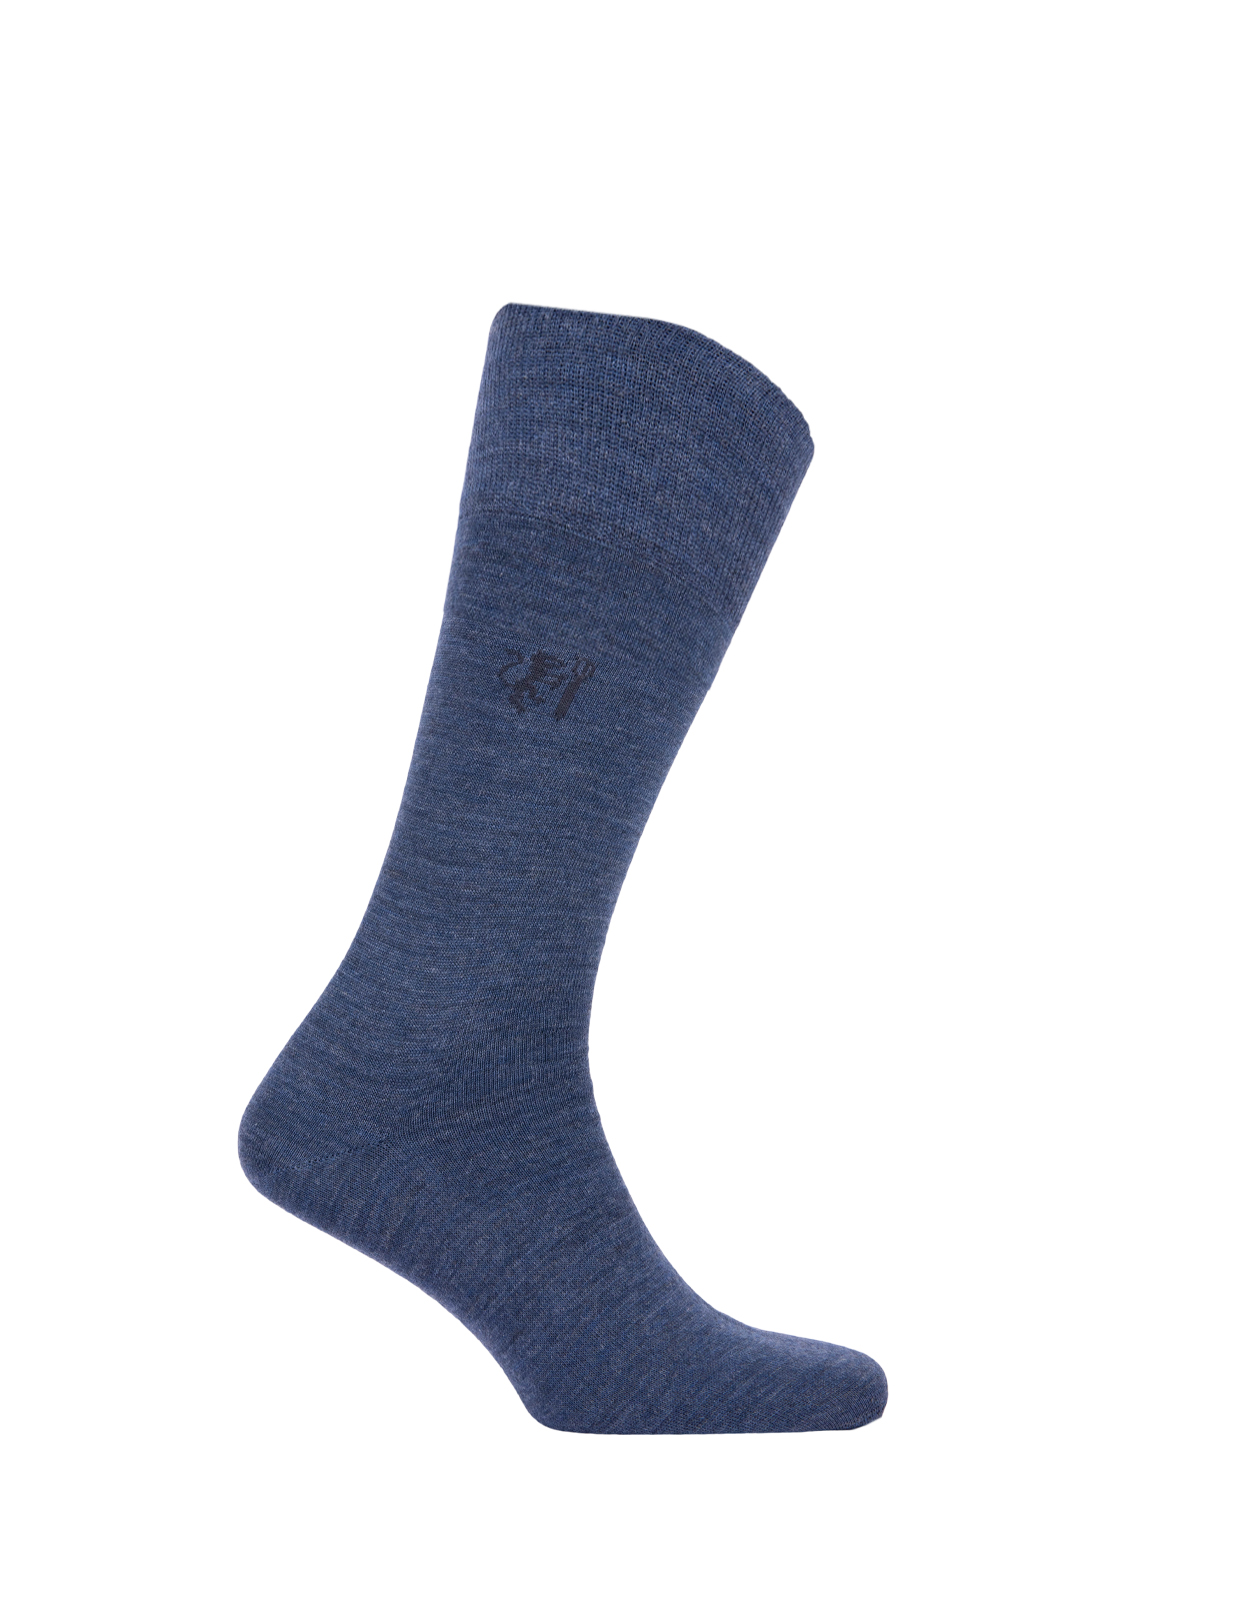 Socks Wool Blend Denim